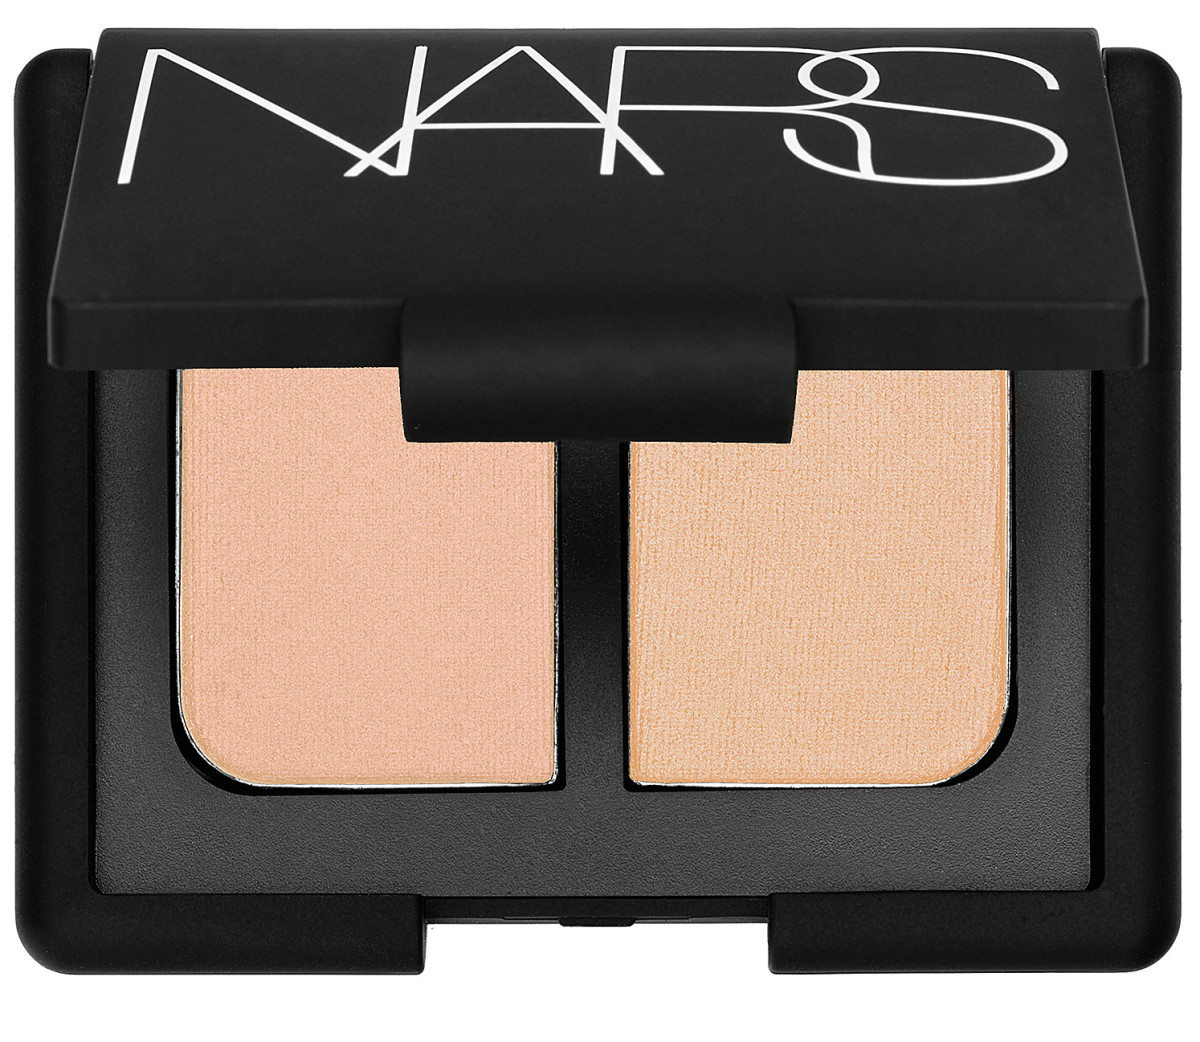 Nars eyeshadow duo in All About Eve, $35, available at Sephora